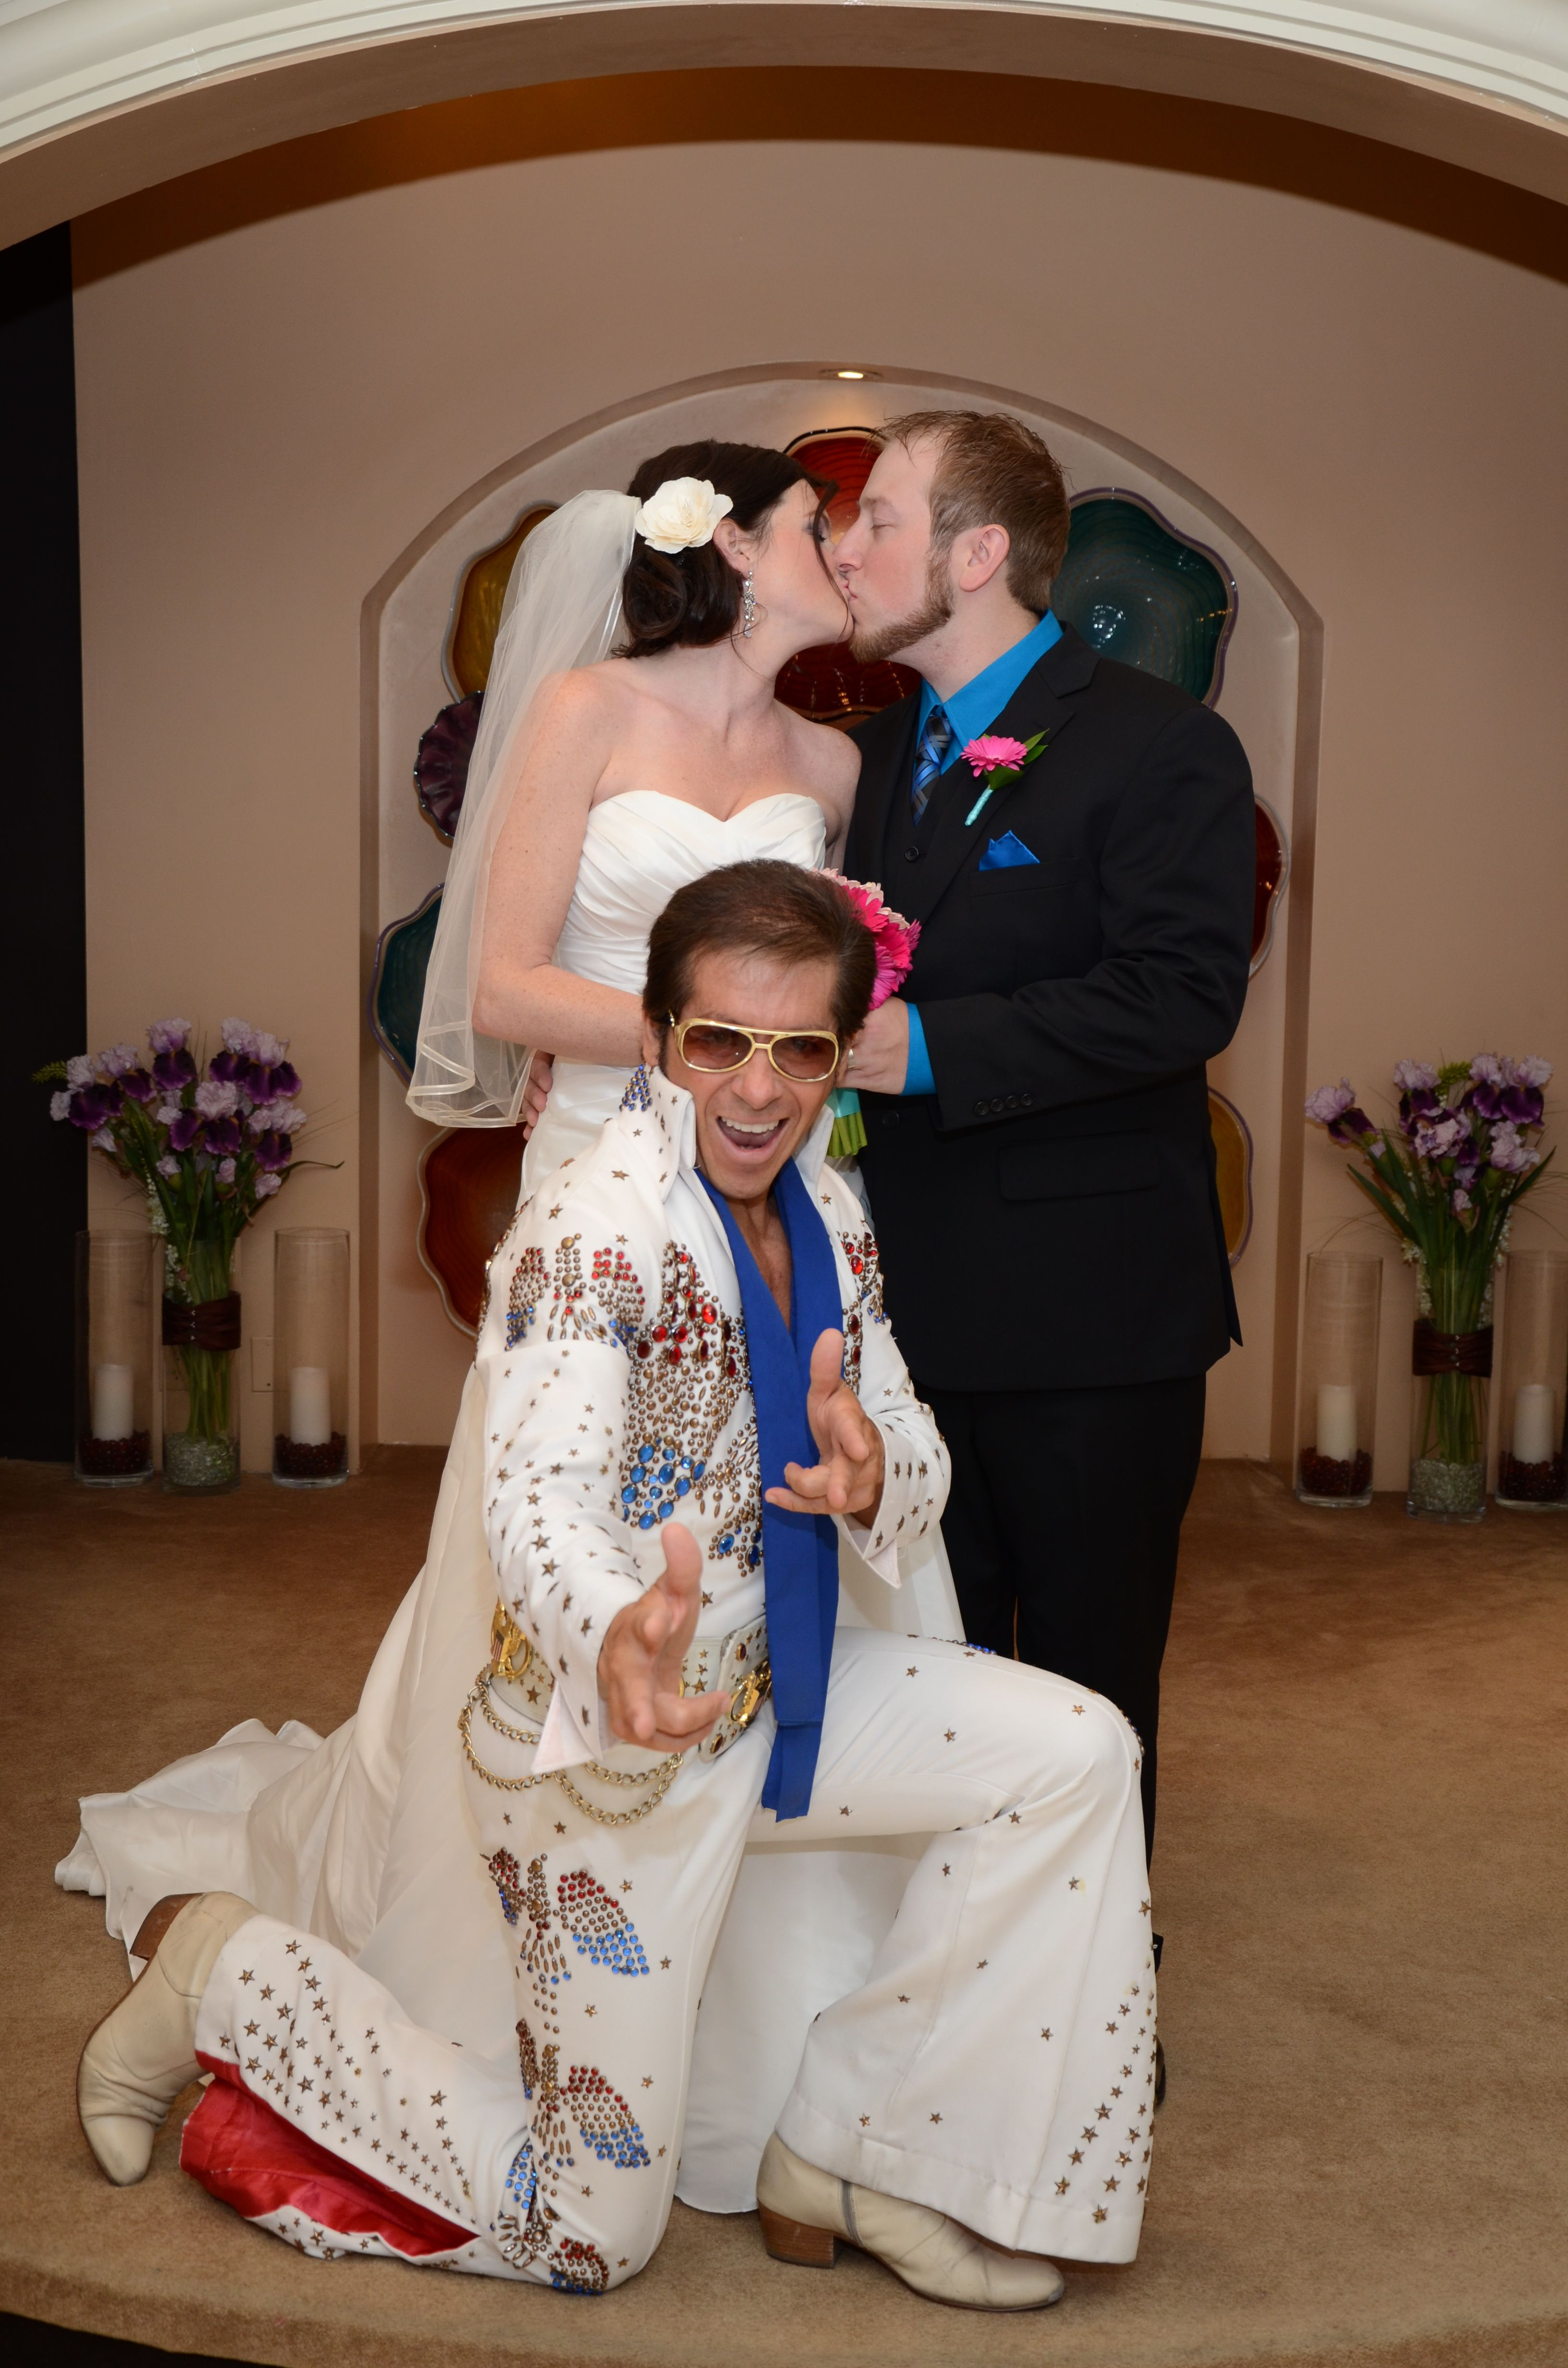 Vegas Style Hollywood Wedding Get Married By The King On Same Hallowed Grounds Where Elvis And Priscilla First Exchanged